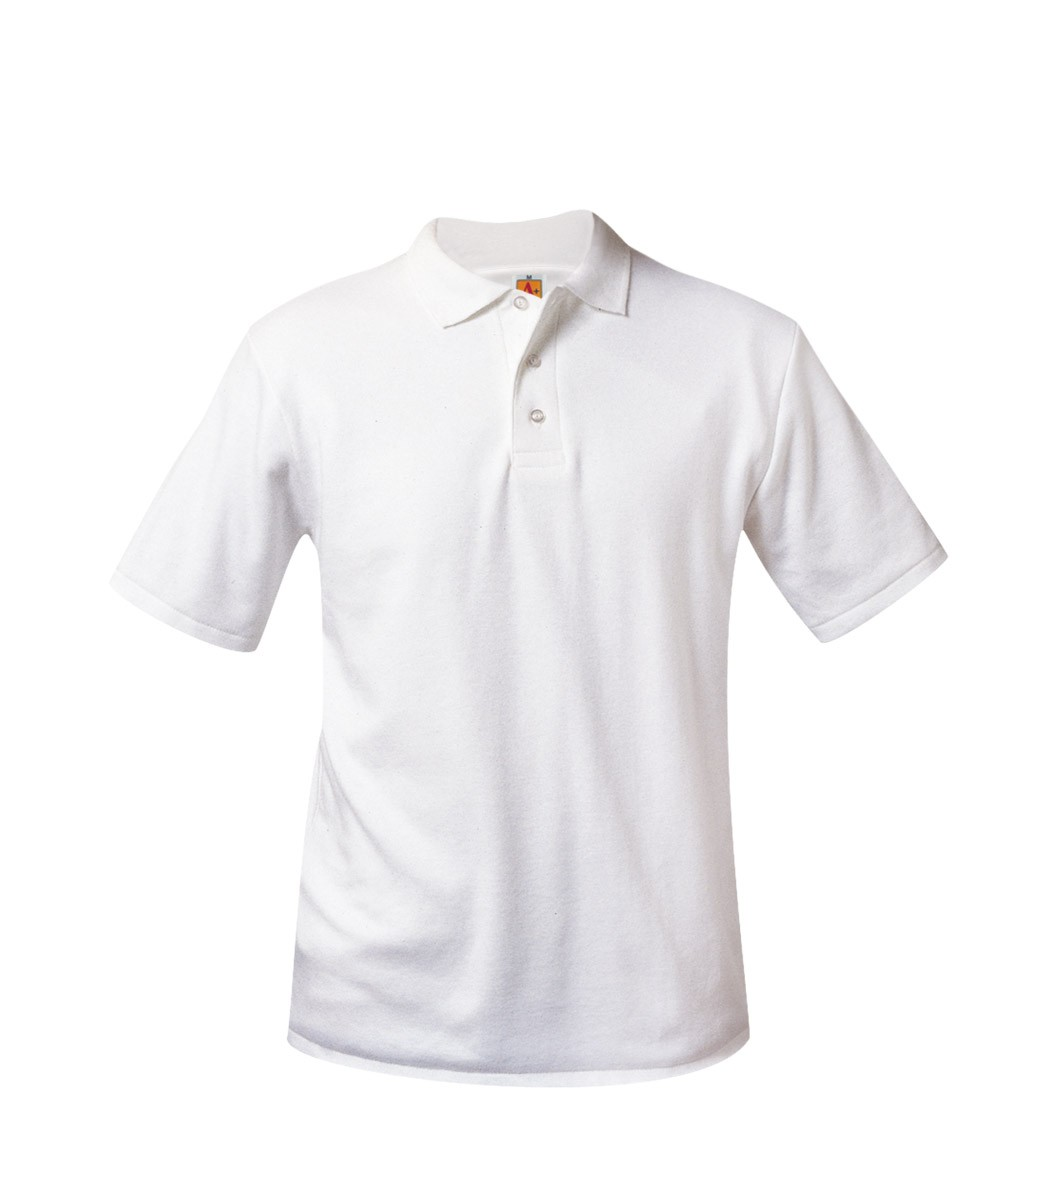 ASM A+ Brand Short Sleeve Polo #8760